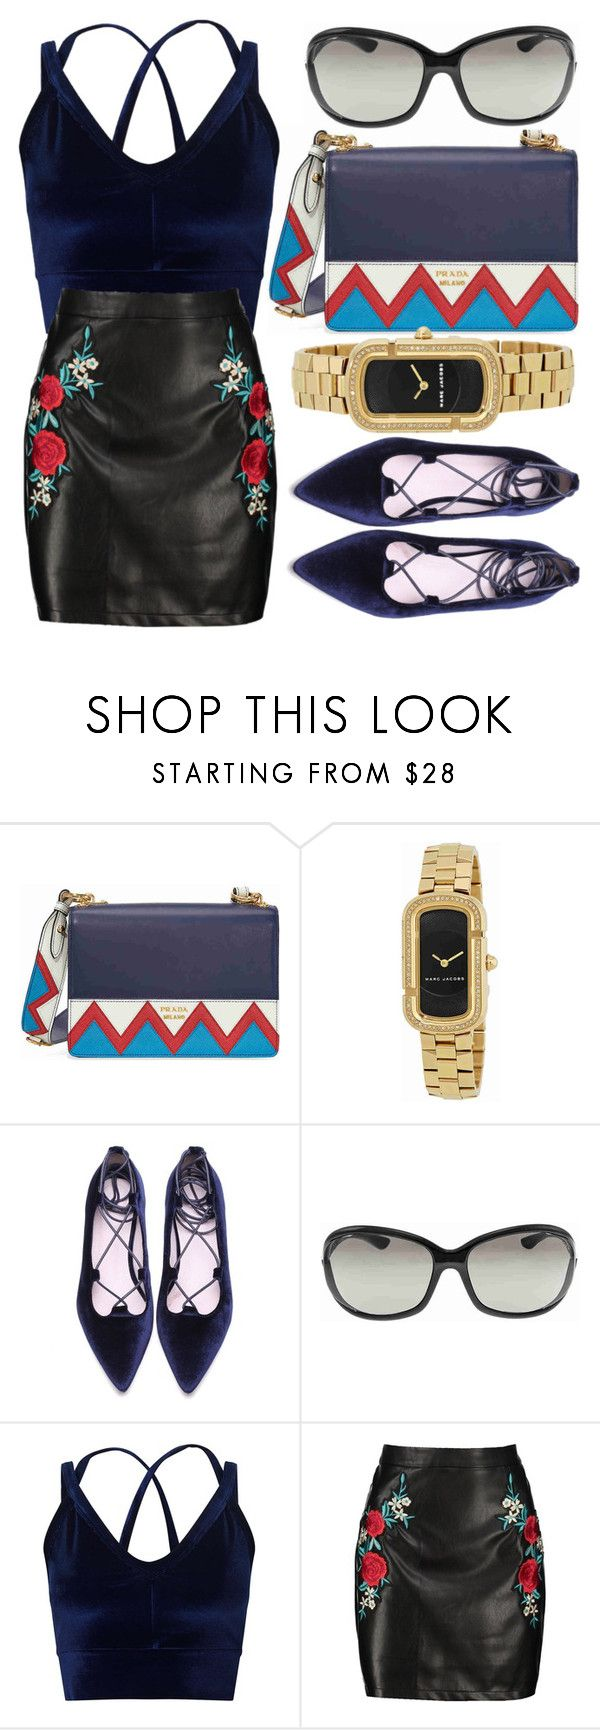 """""""Velvet"""" by jomashop ❤ liked on Polyvore featuring Prada, Marc Jacobs, Tom Ford, Miss Selfridge, Boohoo and Blue"""